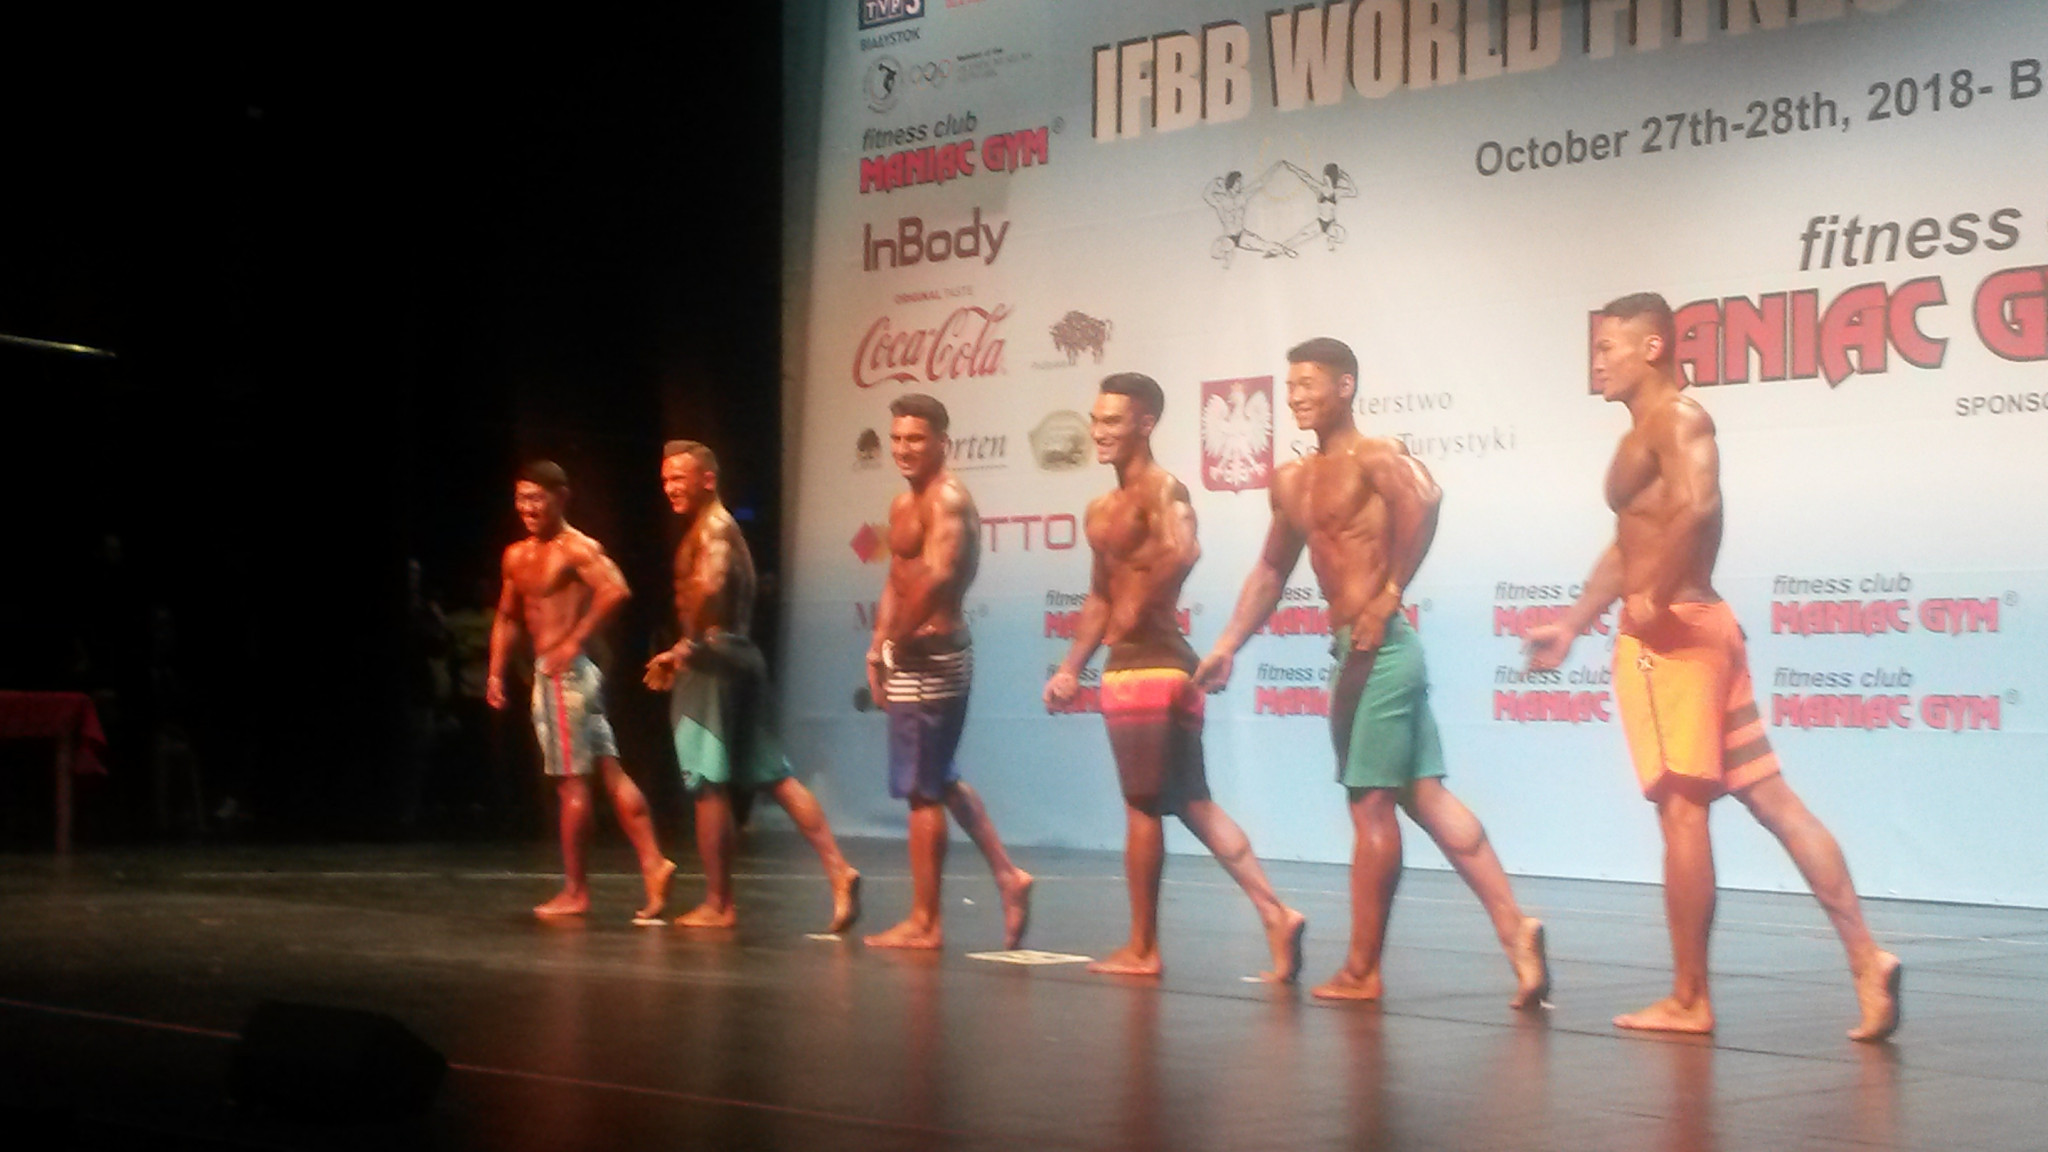 China's Liu Maoyi, third from the right, won his under 179cm category and overall men's physique gold on the first day of the IFBB World Fitness Championships in Bialystok, Poland ©ITG